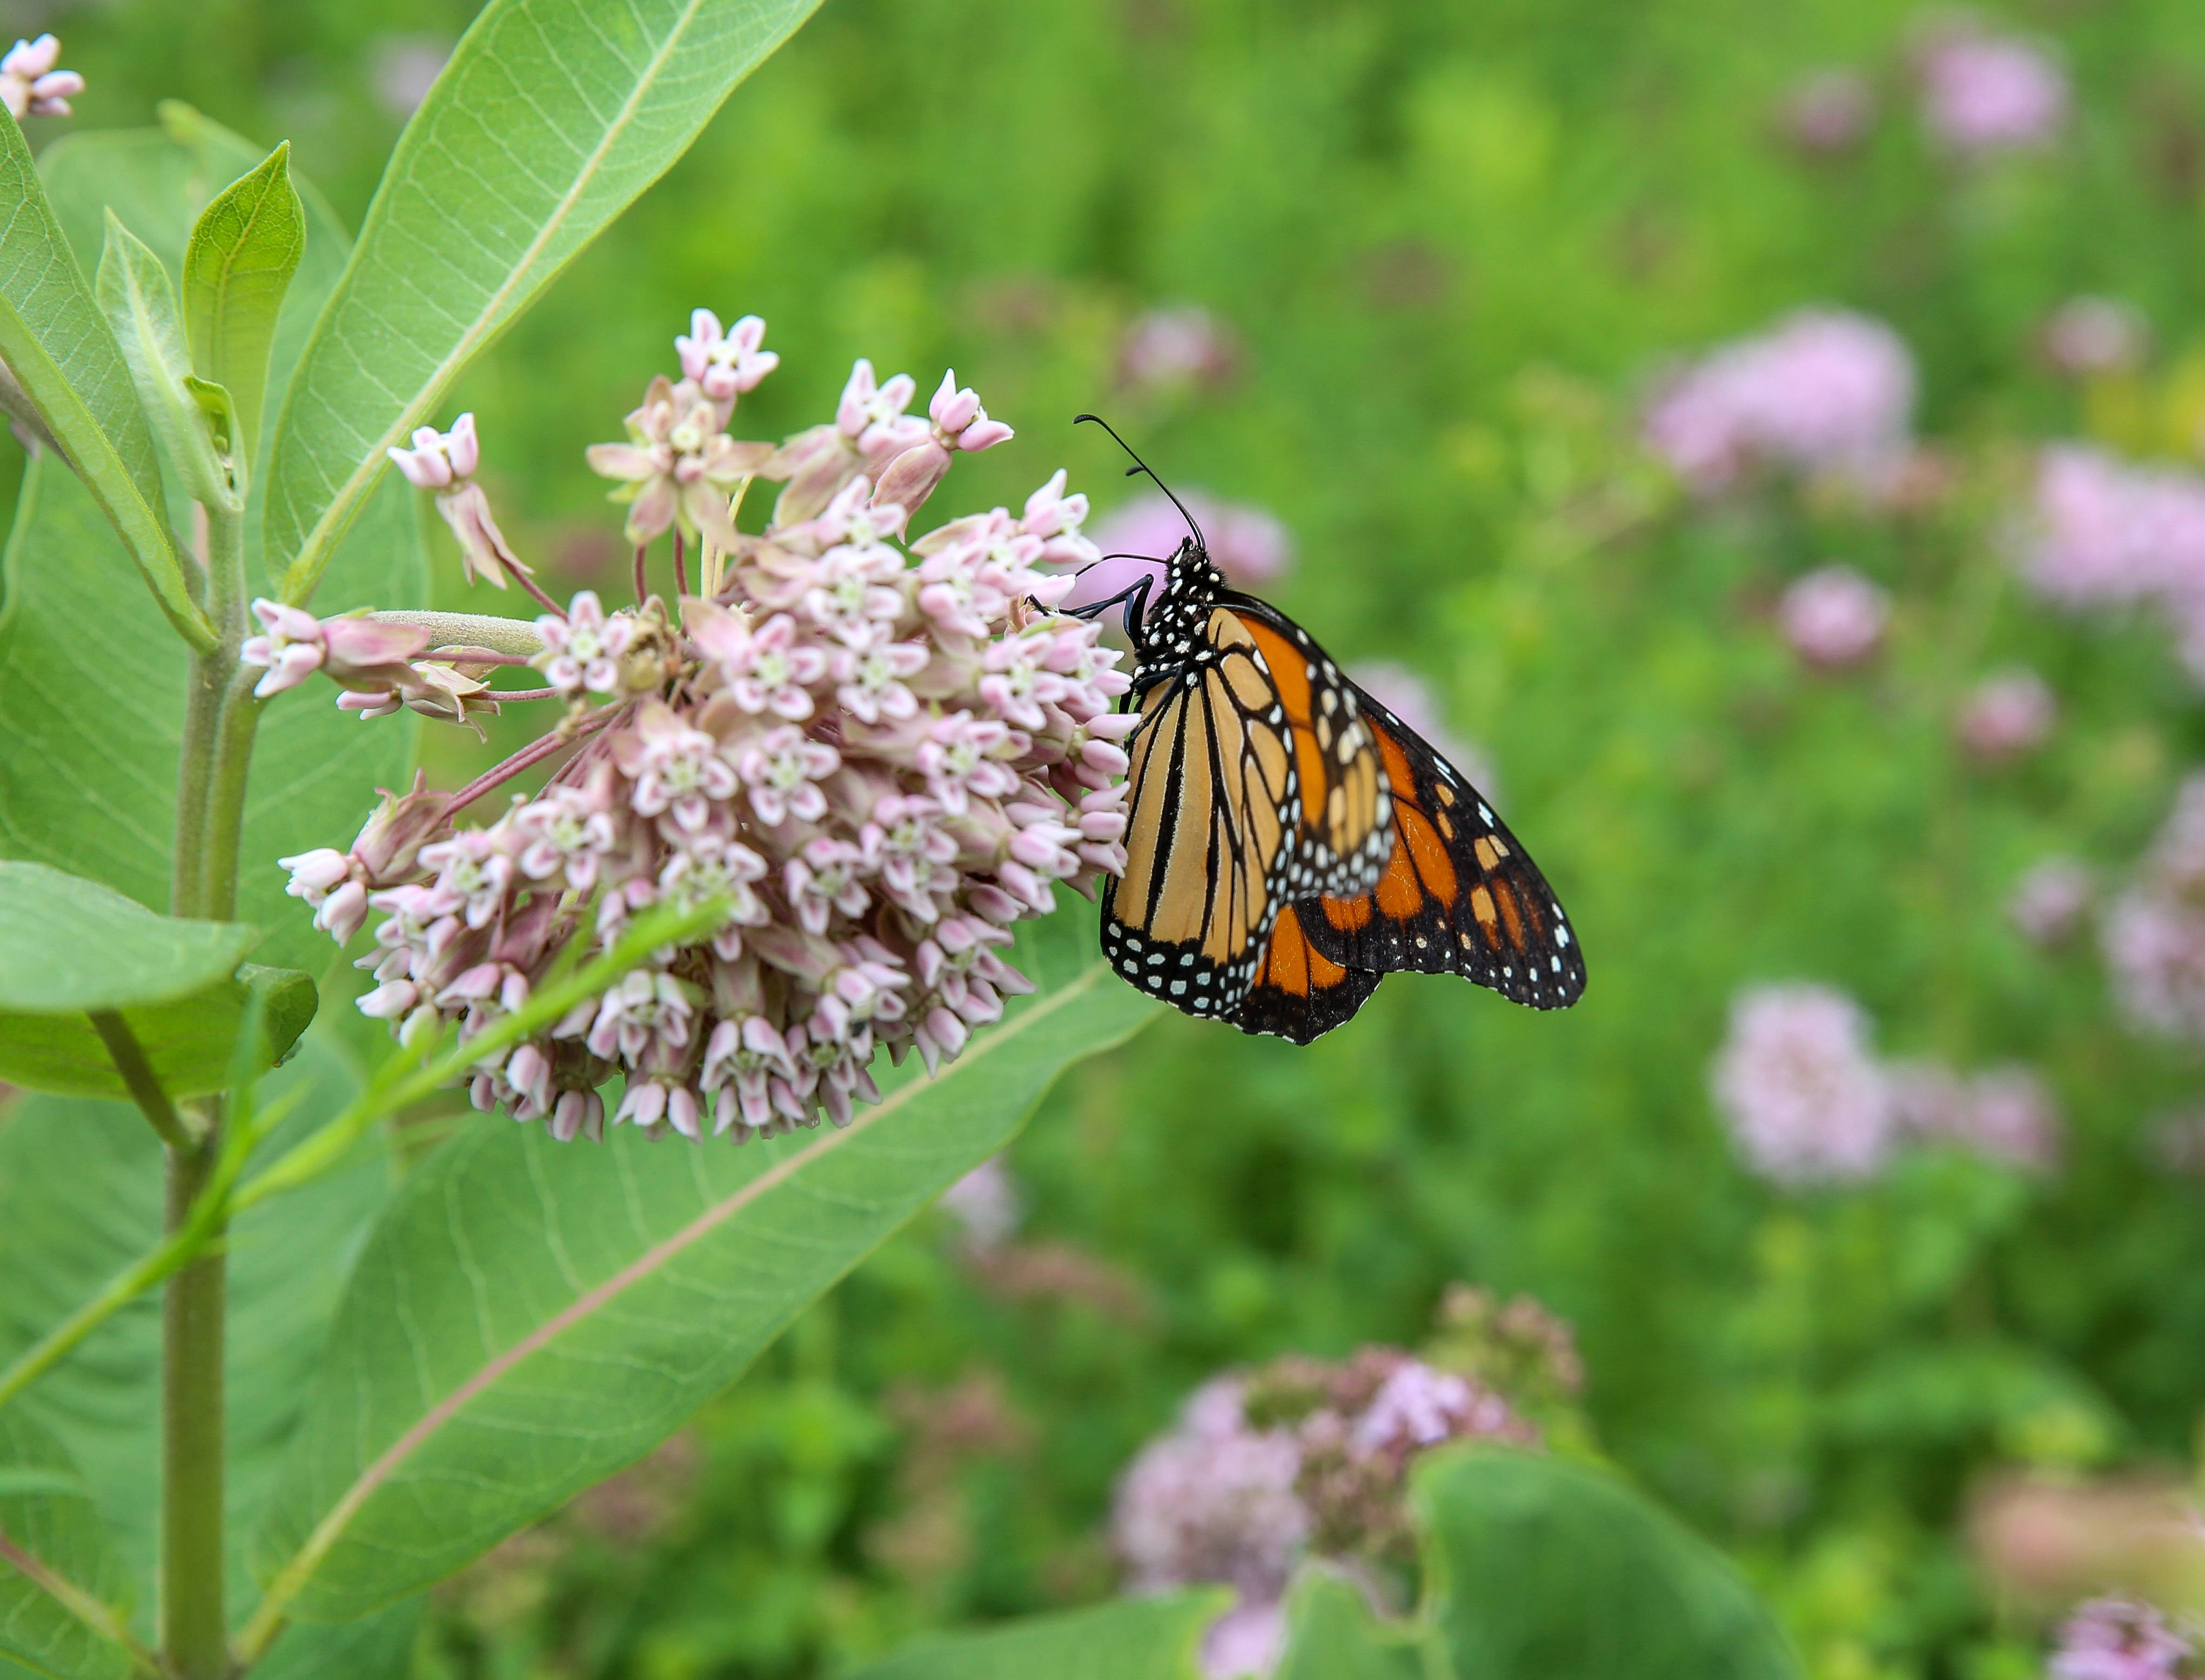 Postal service offers meeting on future of Naperville pollinator garden